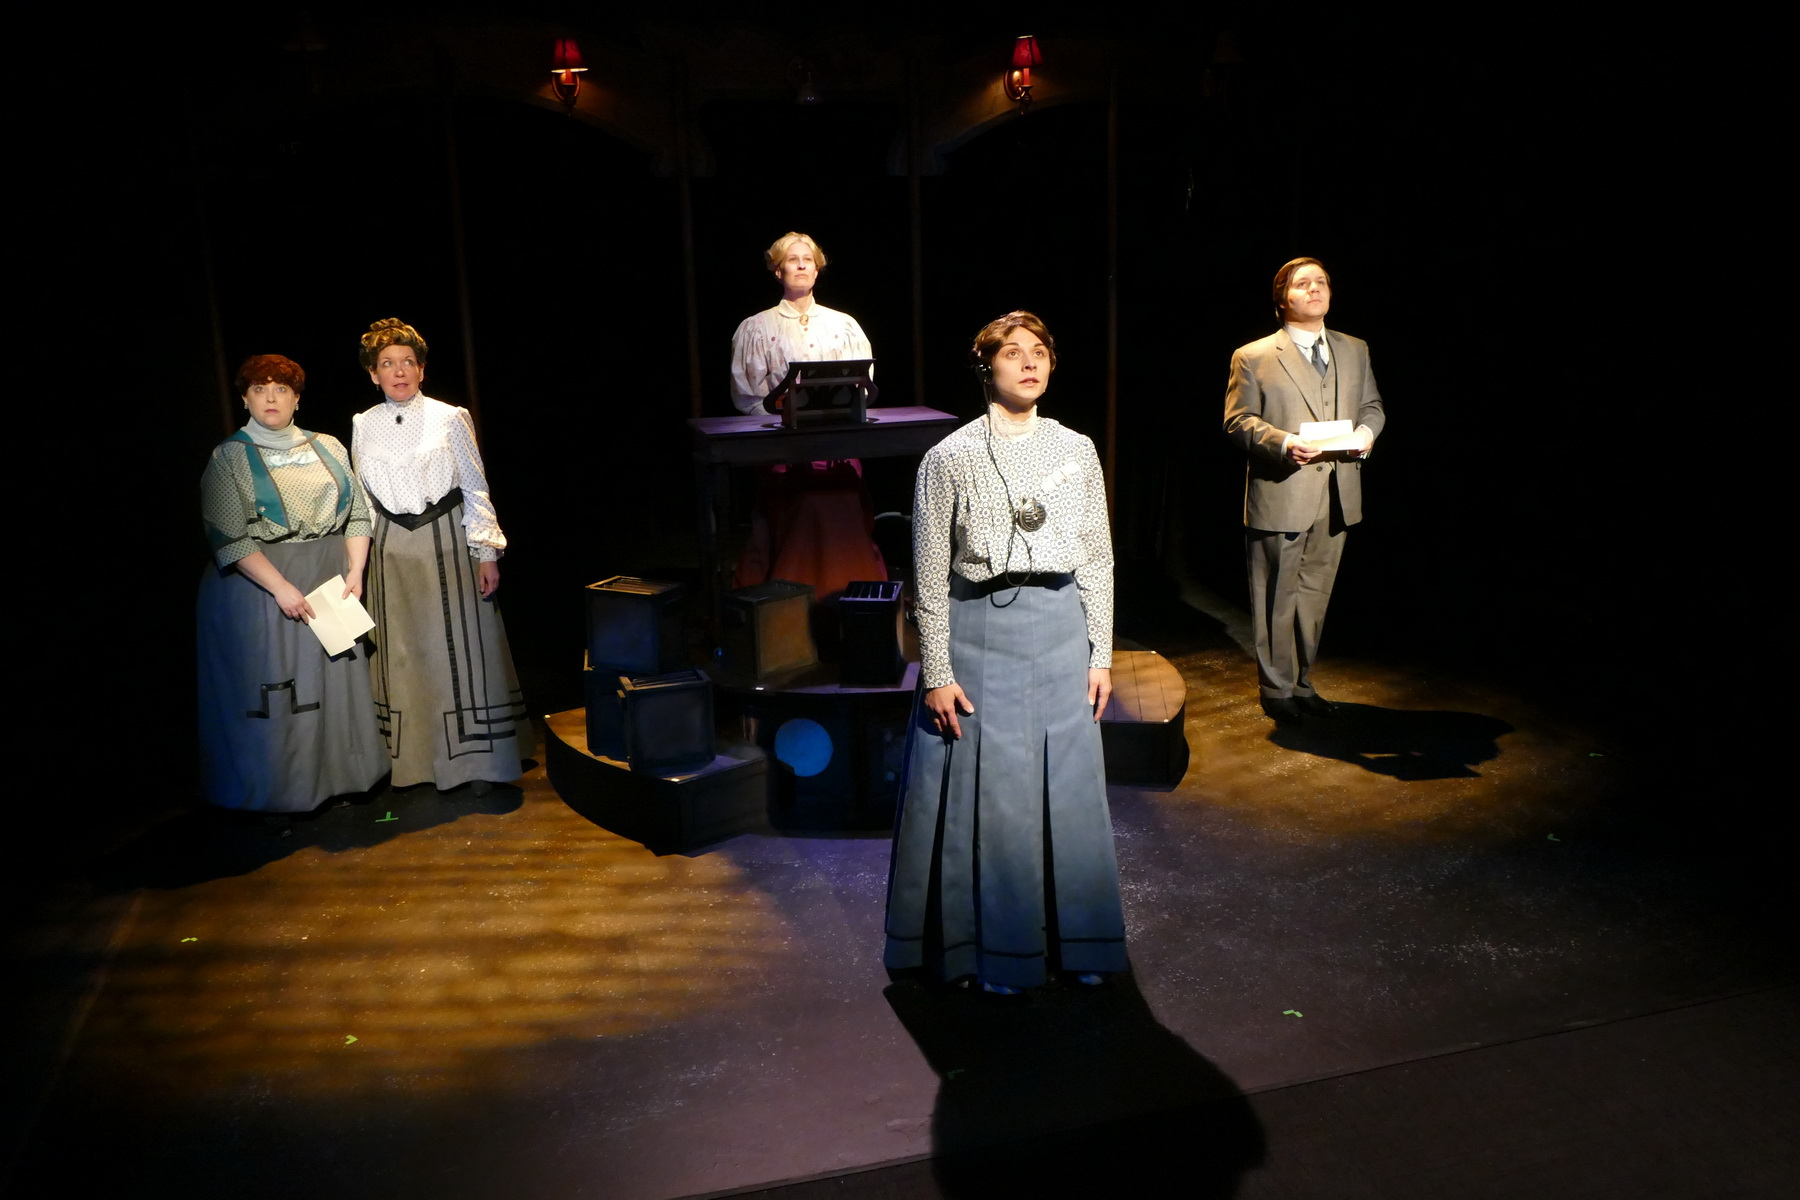 Cast of Silent Sky: front: Brittany Gaul as Henrietta Leavitt  Back: Molly Clay as Williamina Fleming and Pam Matthews as Annie Cannon, Jill Kenderes as Margaret Leavitt, and Andrew Keller as Peter Shaw